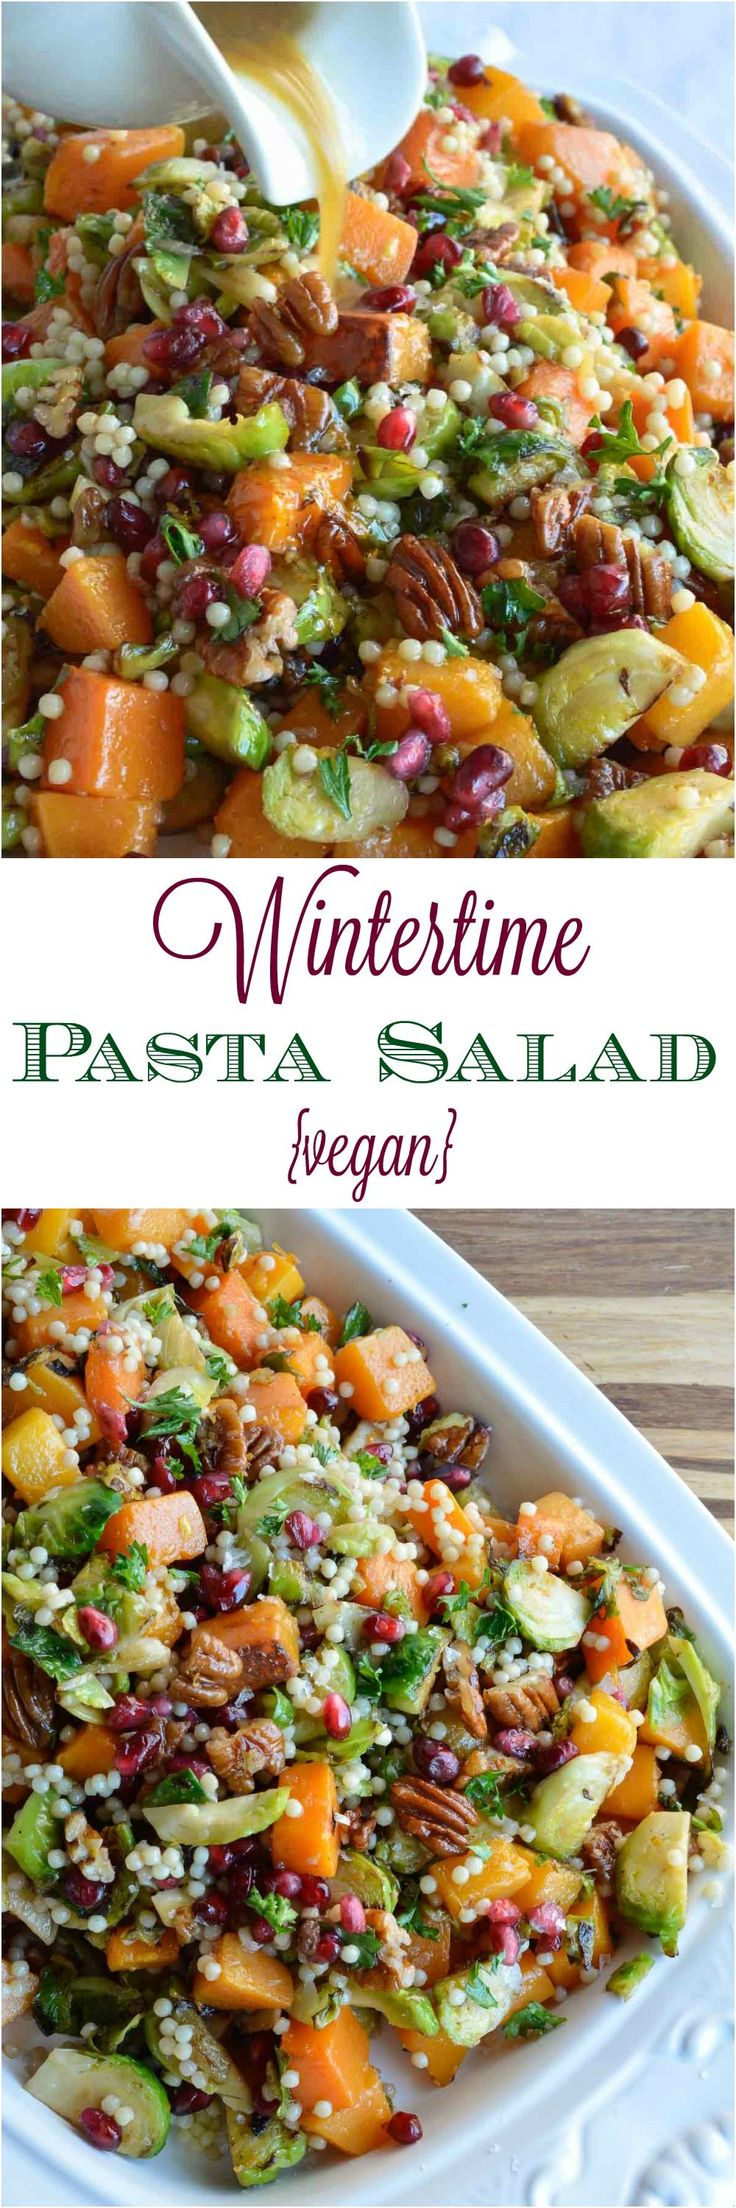 Butternut Squash Pasta Salad is a healthy holiday side dish! This vegan recipe is full of fresh winter produce: butternut squash, brussels sprouts, pomegranate seeds, pecans and pasta. All topped with fresh orange and maple dijon vinaigrette! #client